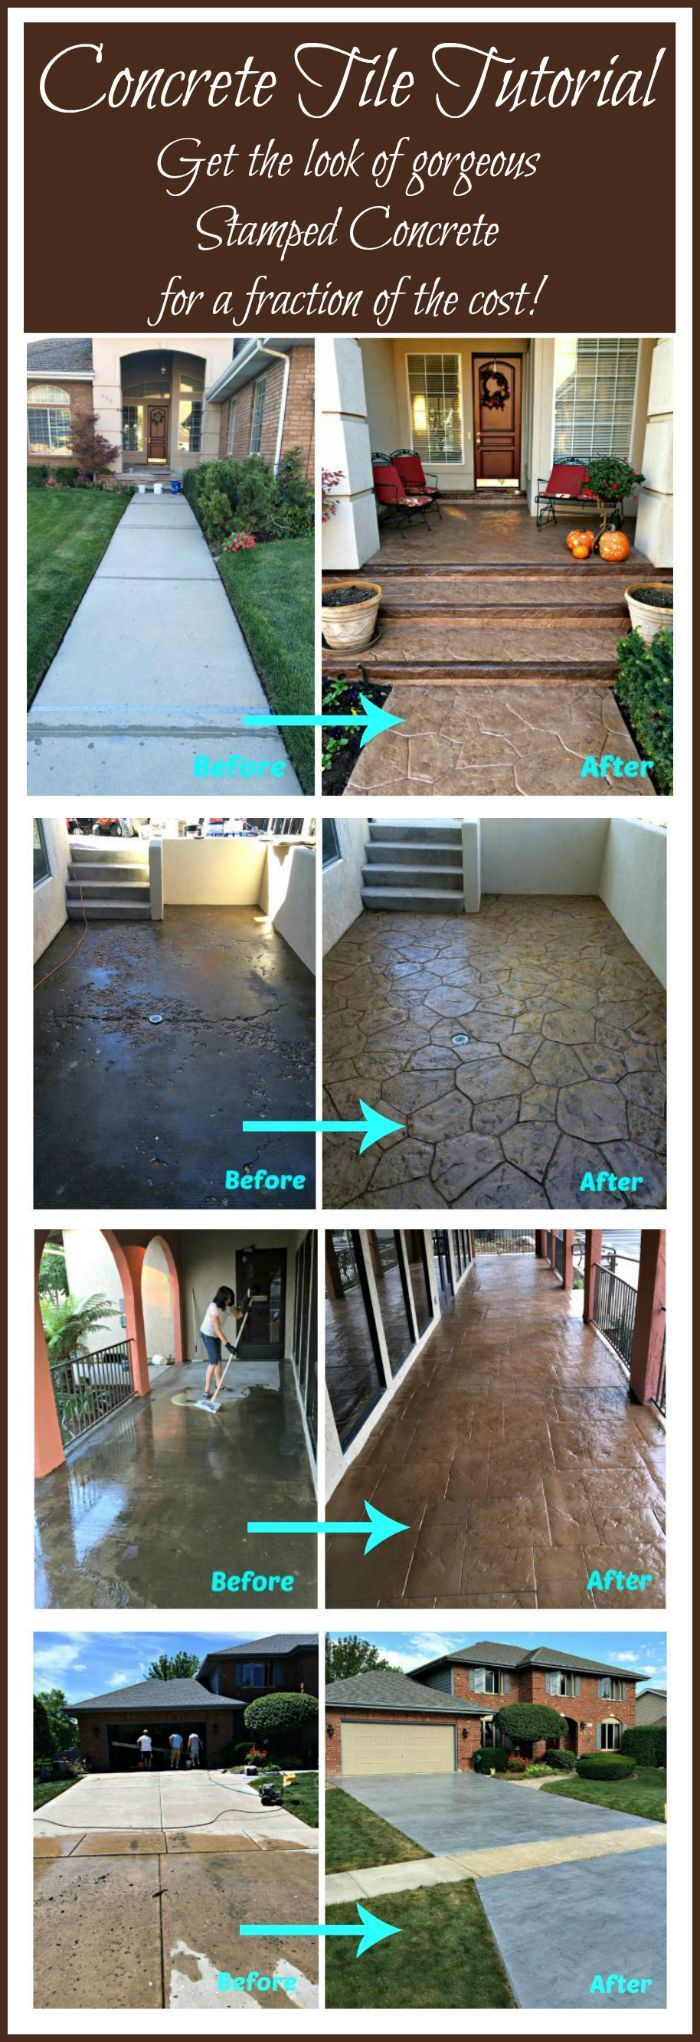 DIY CONCRETE TILE TUTORIAL - Full step by step tutorial on how to get the look of stamped concrete for a fraction of the cost, using concrete tiles! DIY, Do It Yourself, #DIY